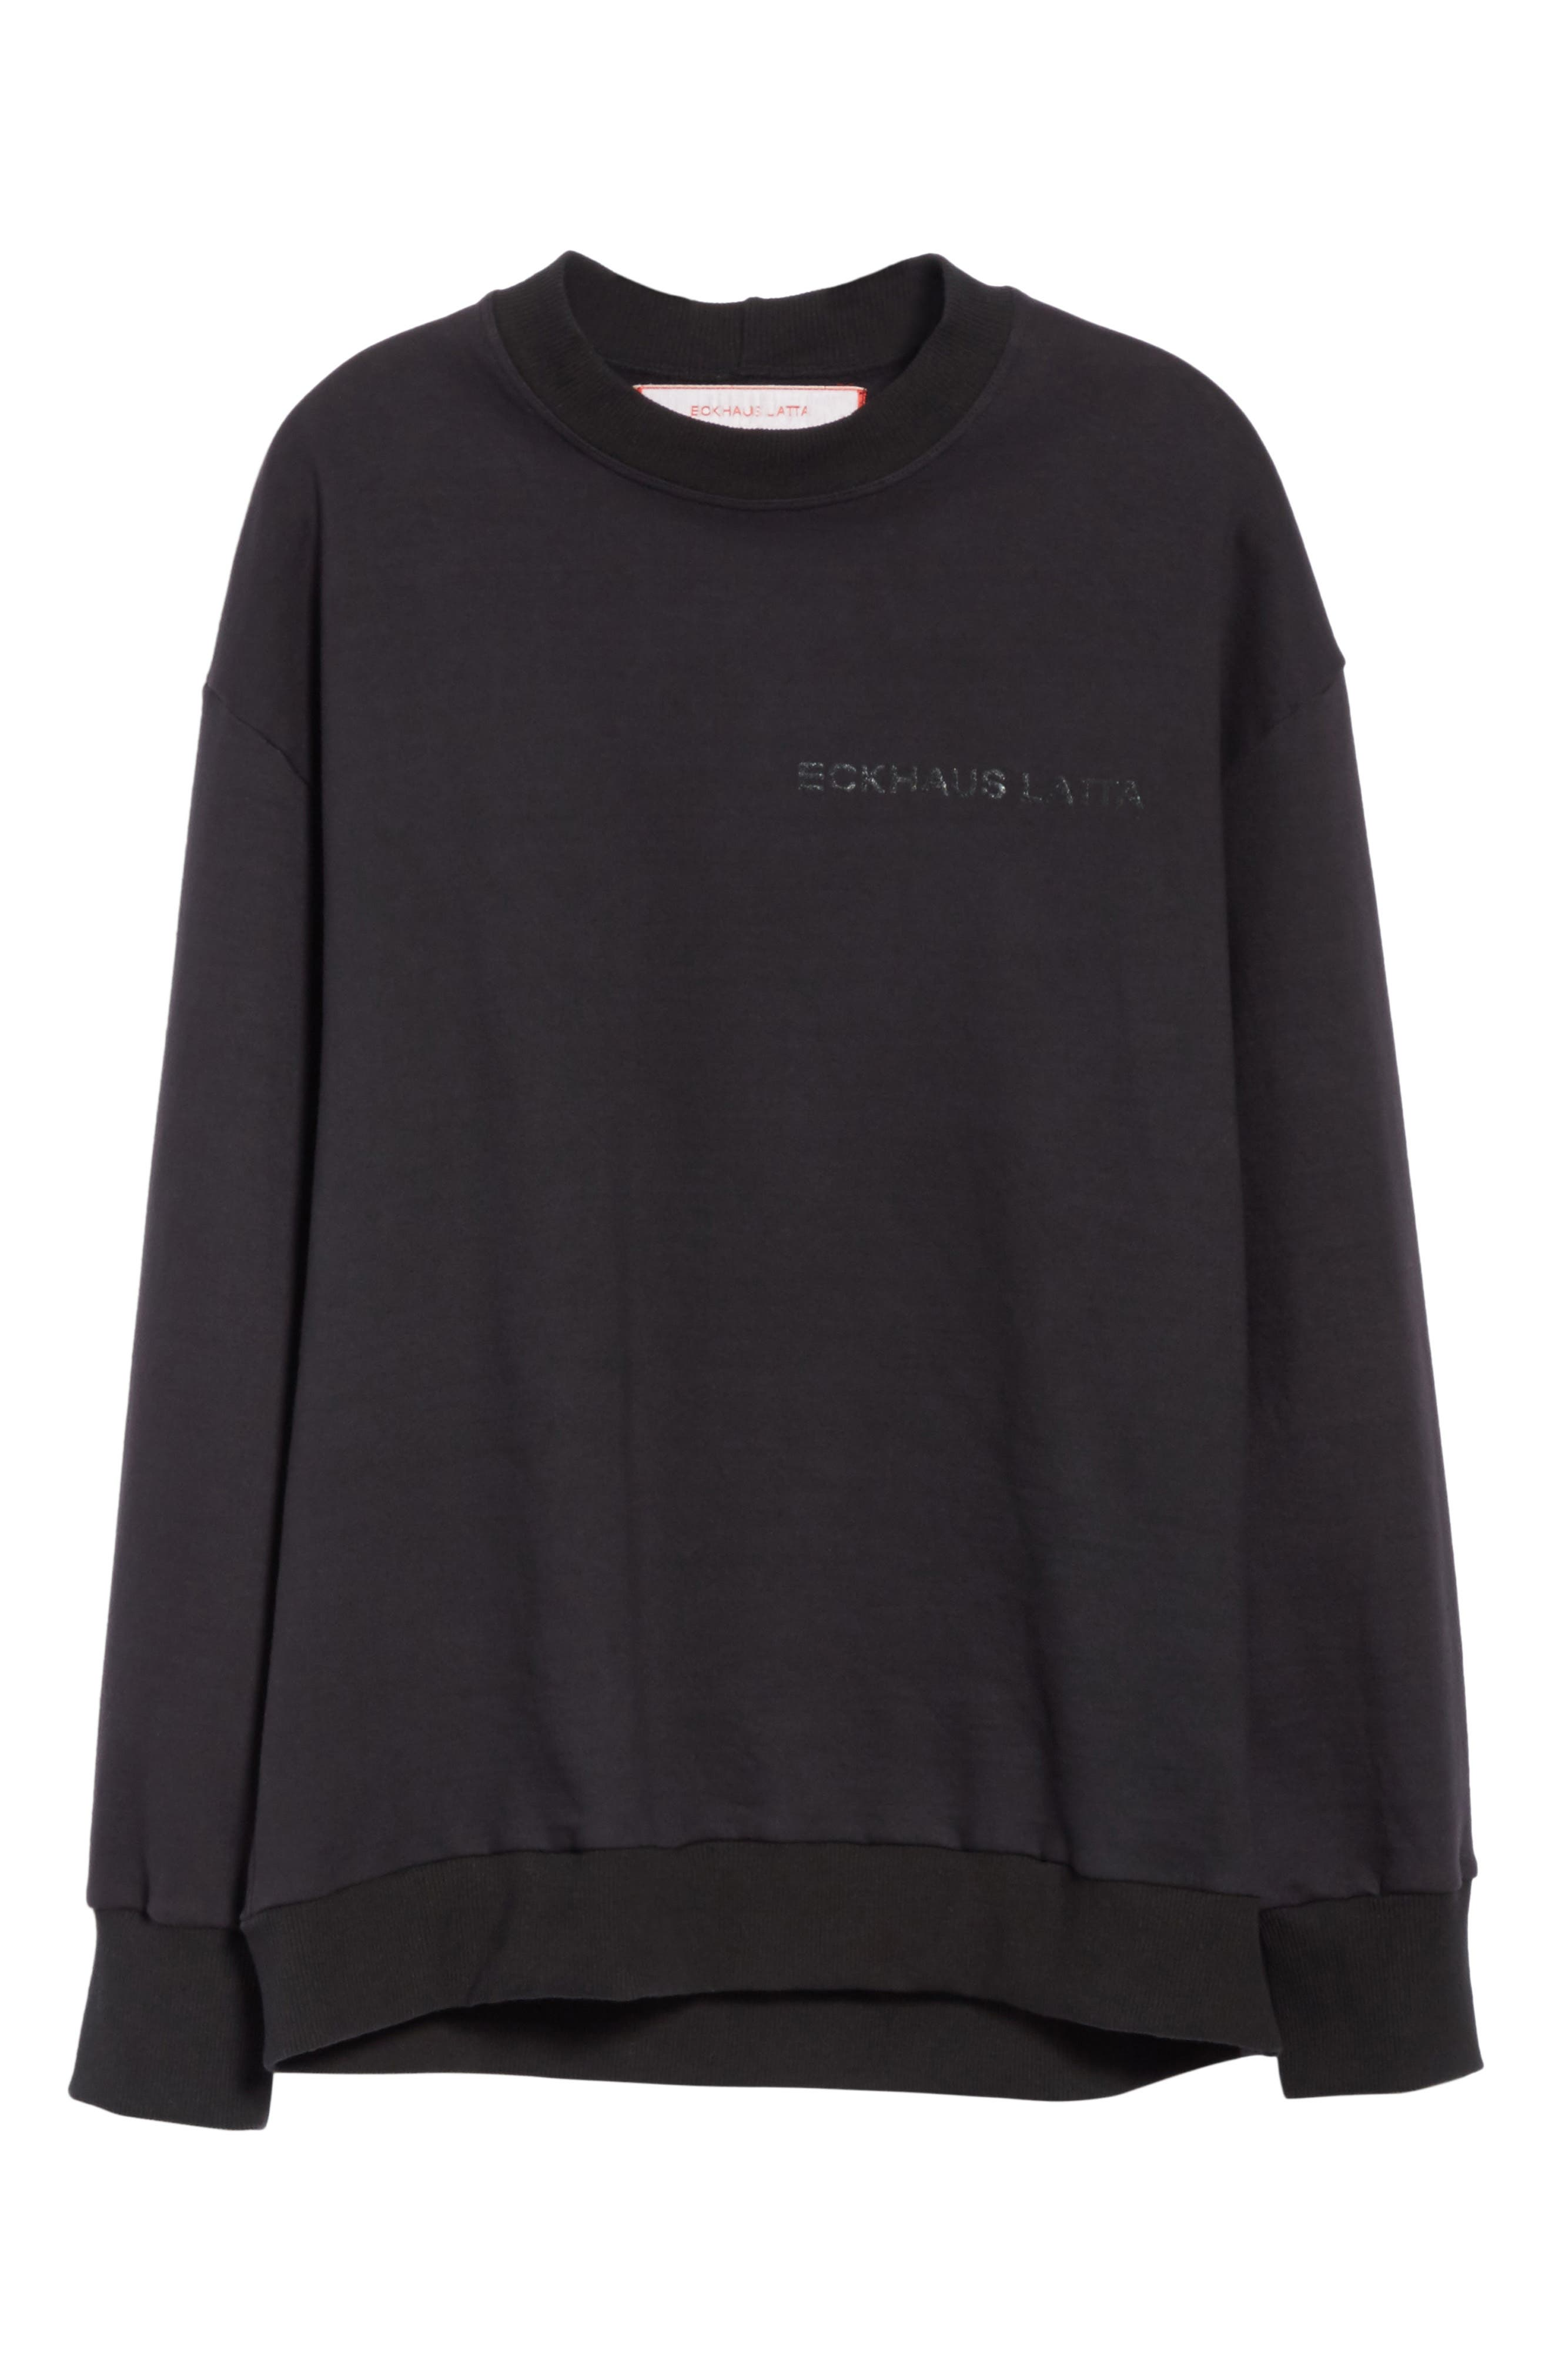 Relaxed Fit Sweatshirt,                             Alternate thumbnail 6, color,